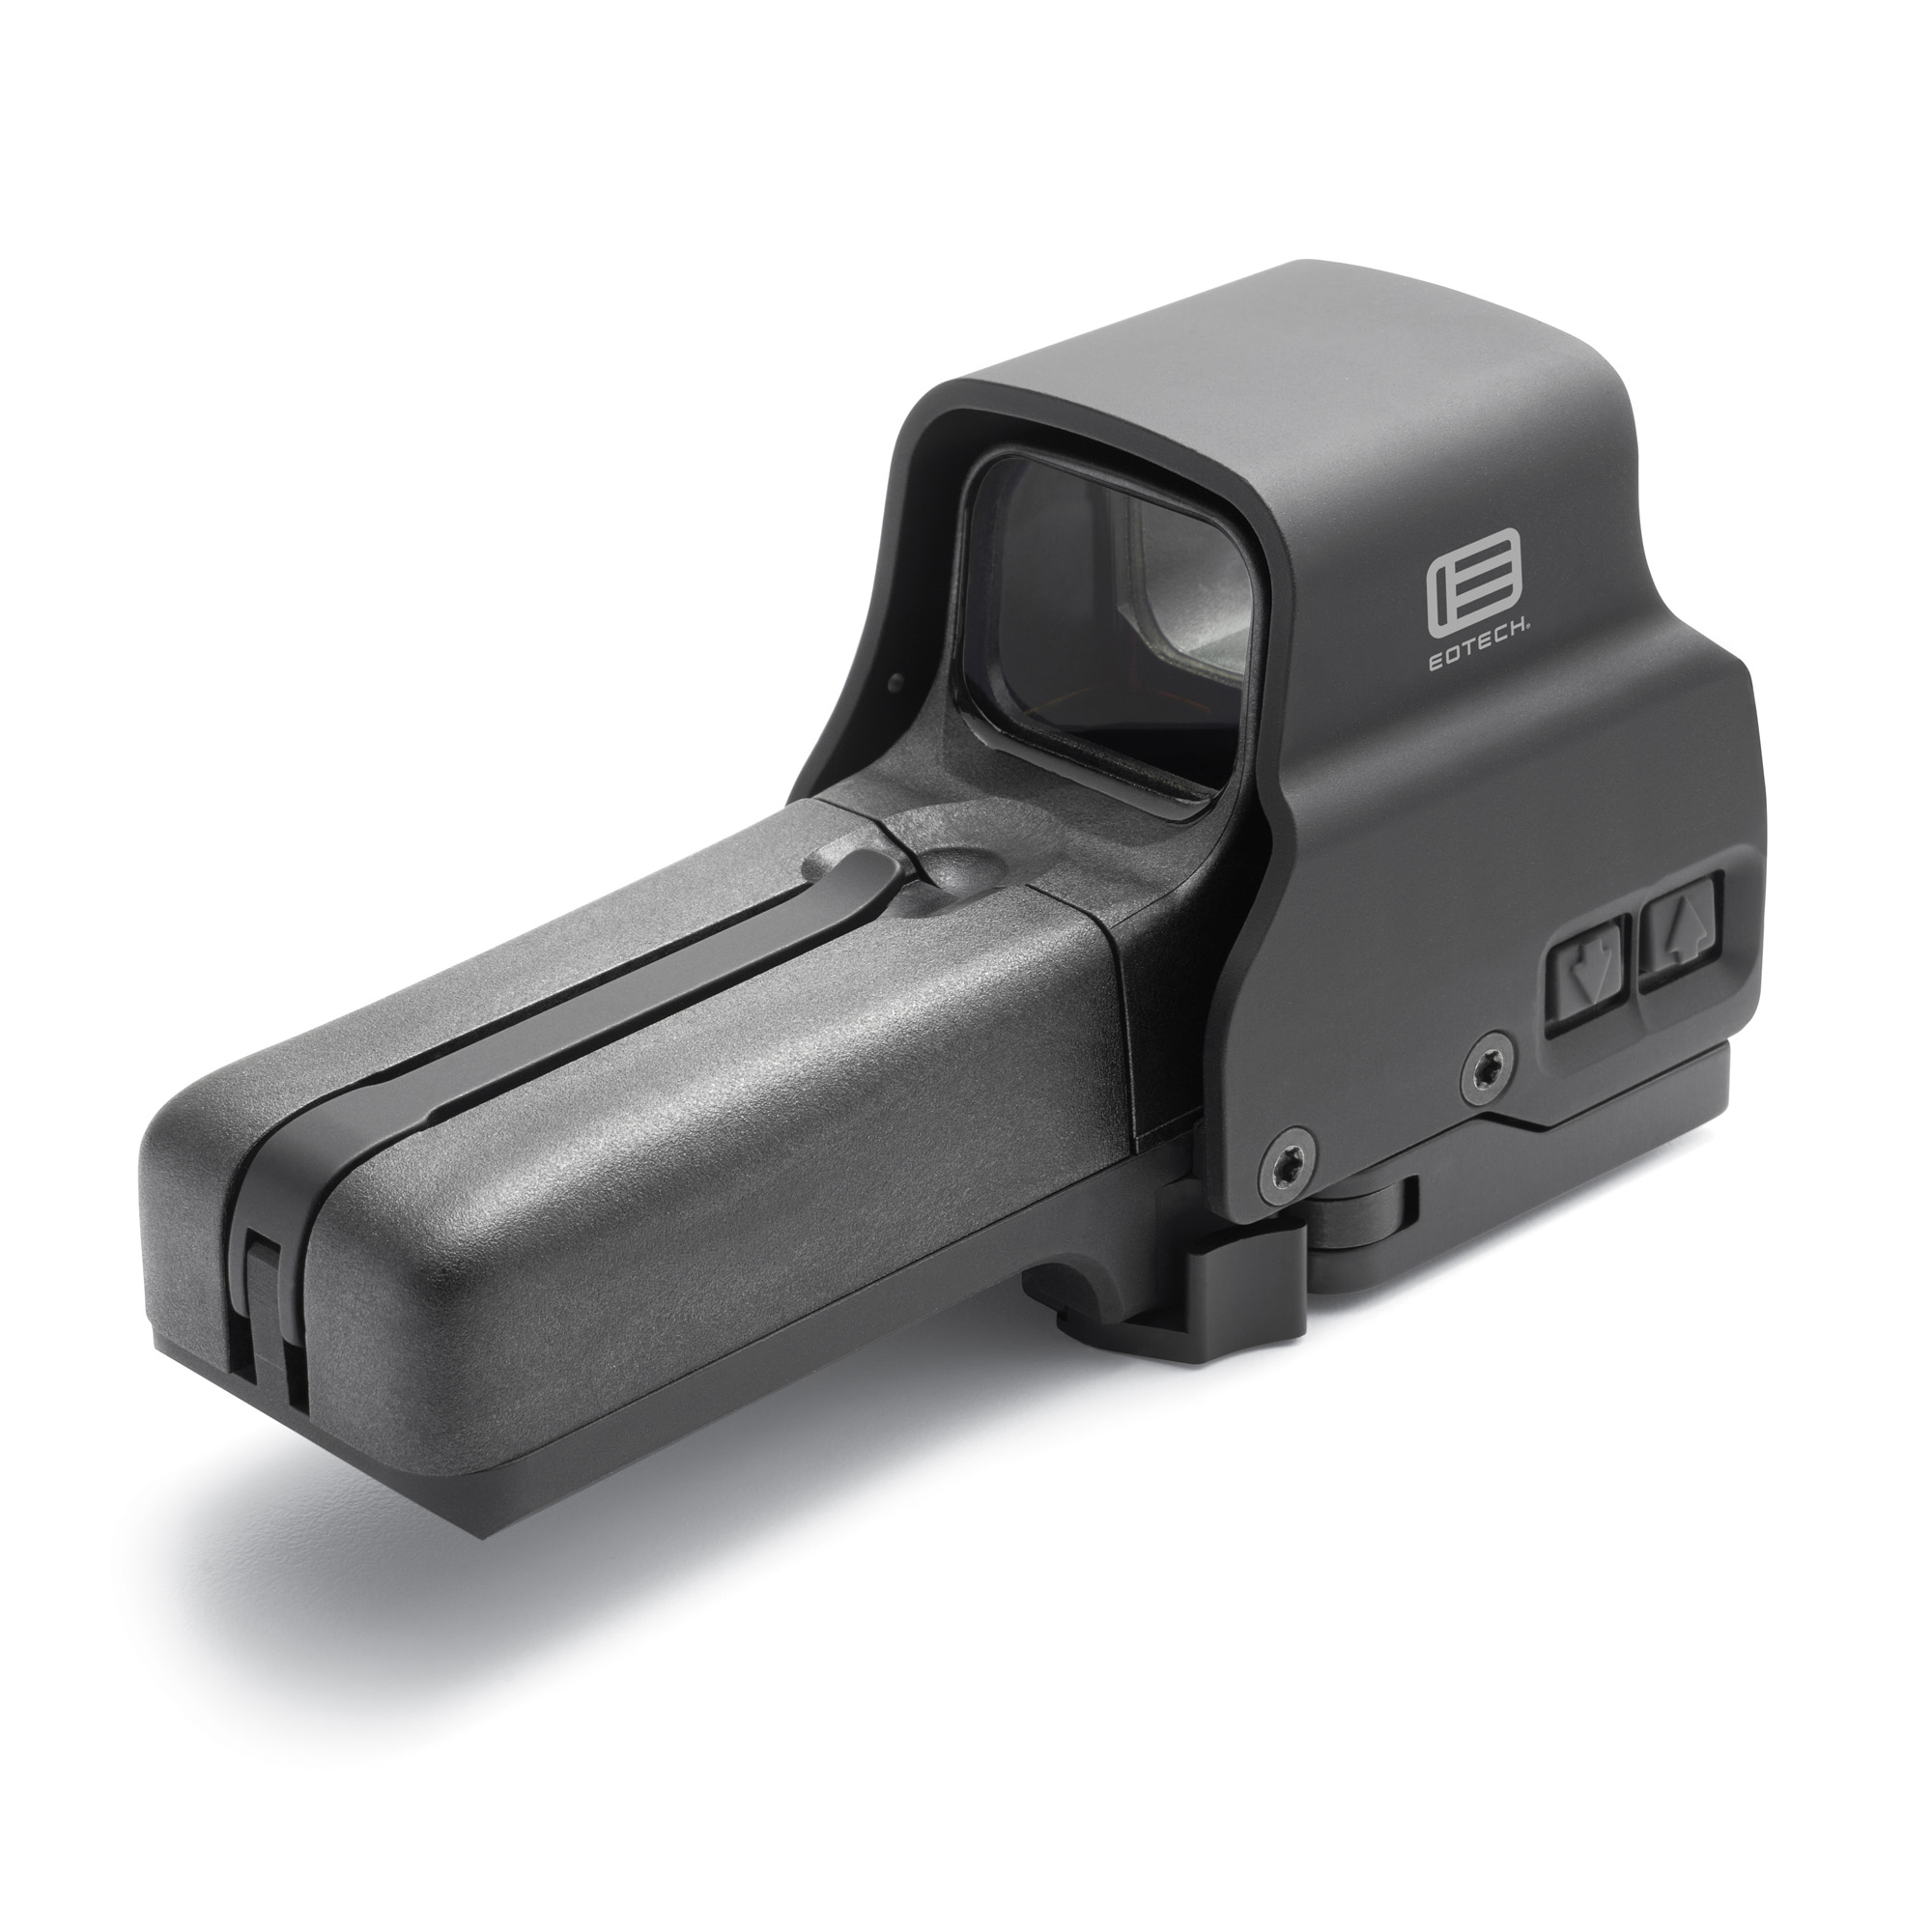 The best just got better. The 518 runs on easy to find AA batteries but offers all of the features found in EOTech's EXPS top of the line sight. With side button functionality you can reduce rail space when partnering the 518 with an EOTech magnifier. The 518 is also compatible with the new drop-in Laser Battery Caps that EOTech designed to enhance aiming through the use of visible and IR lasers.